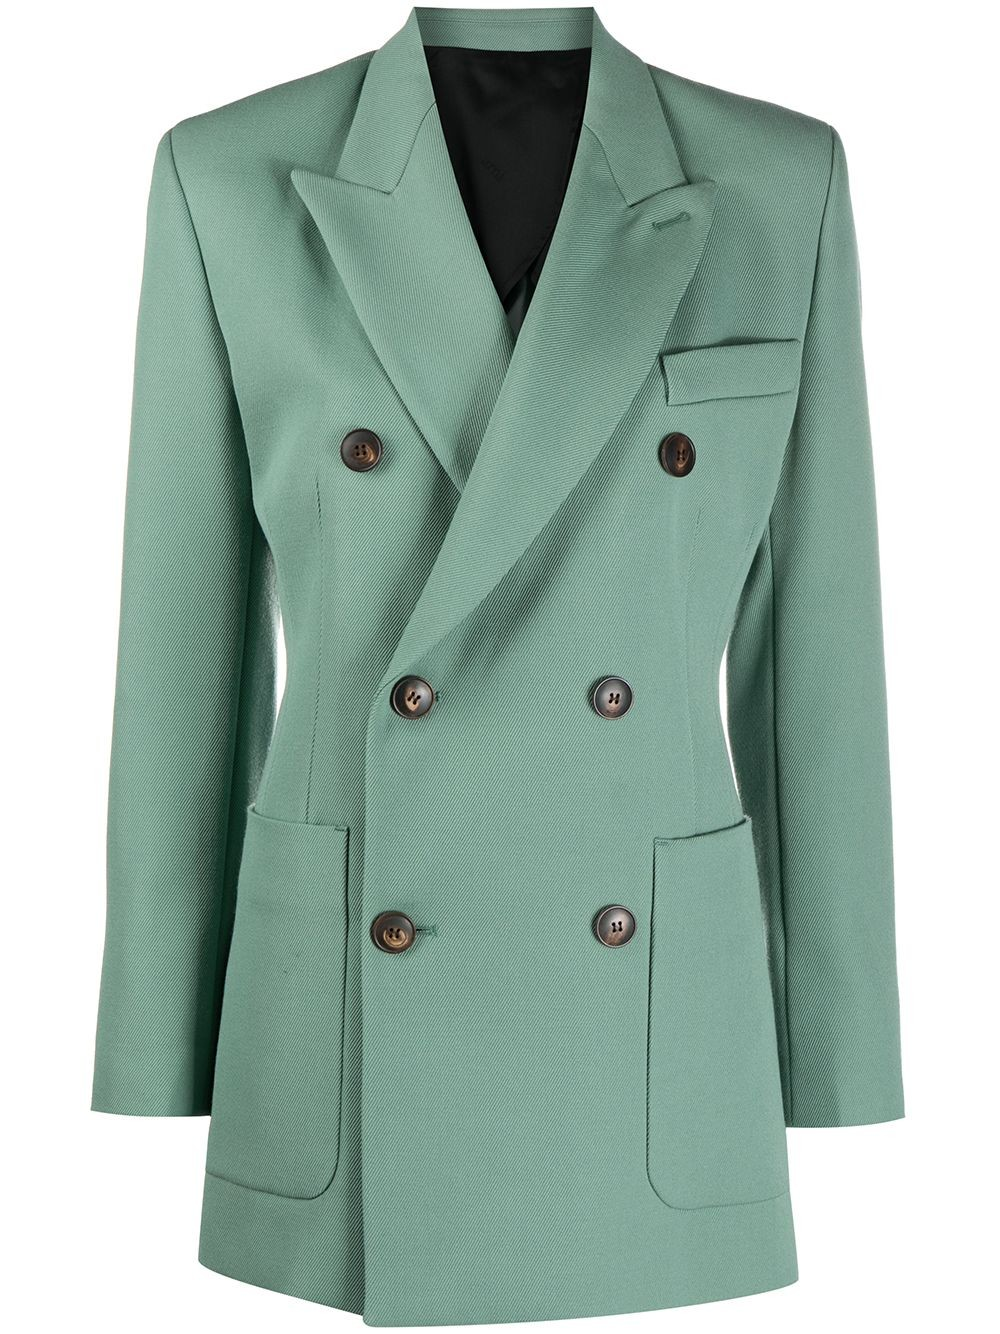 STRUCTURED JACKET DOUBLE